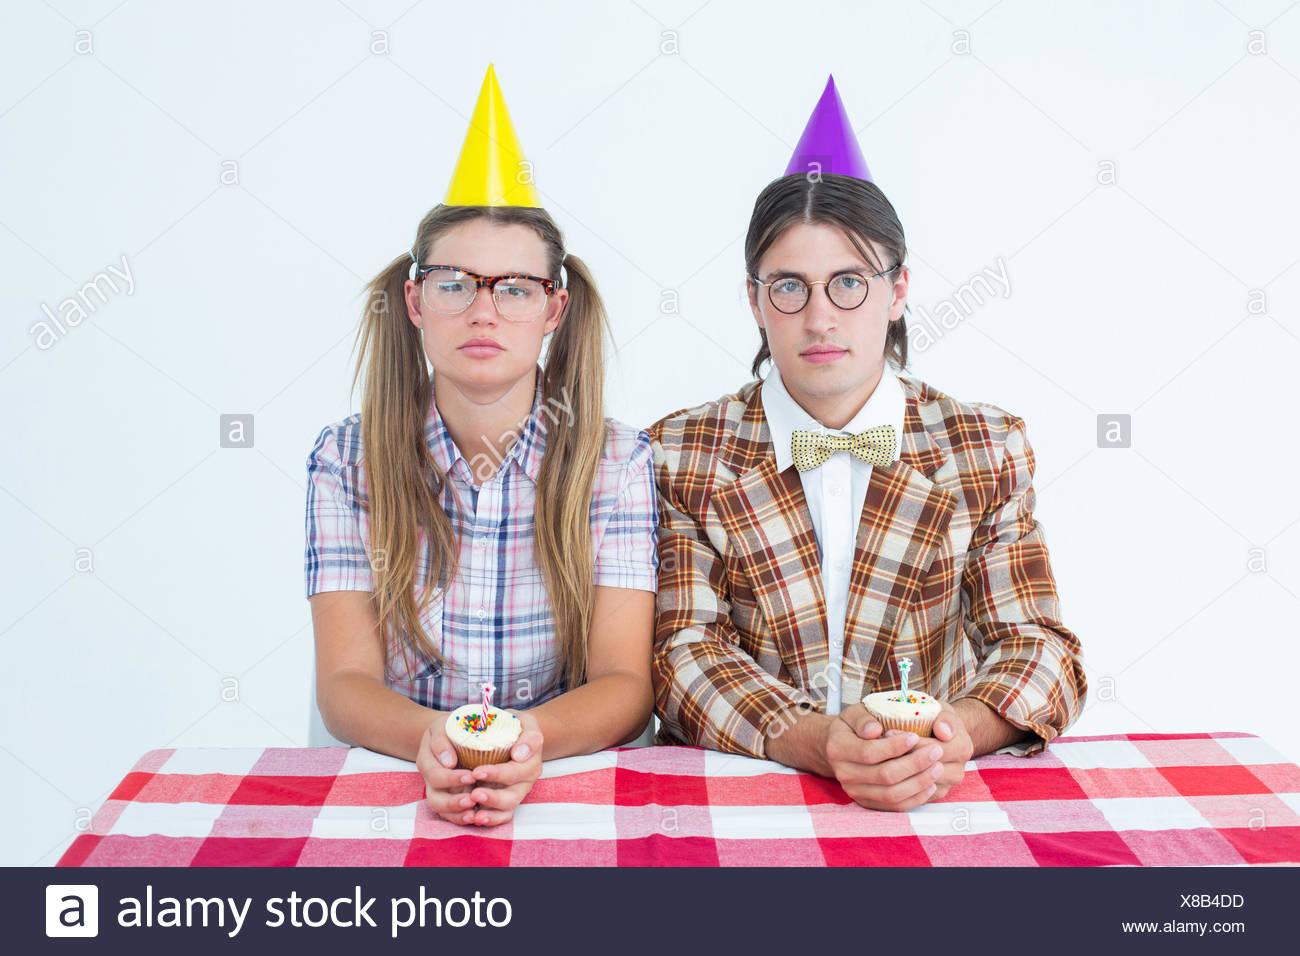 Unsmiling geeky hipsters celebrating birthday Stock Photo